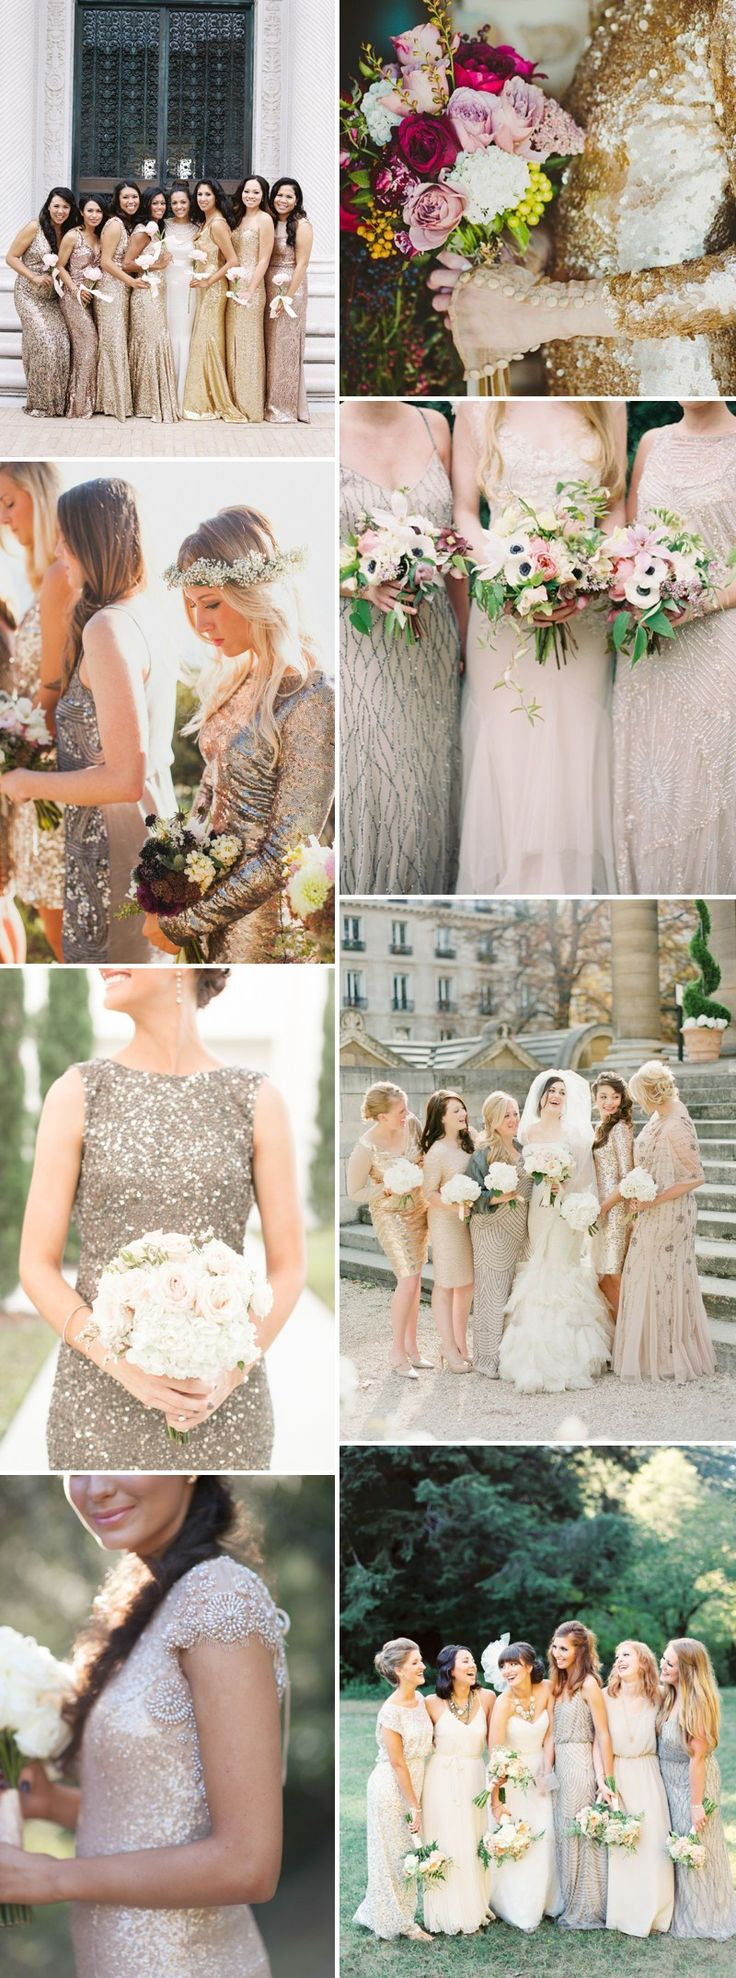 Four Beautiful Bridesmaid Trends For 2014 Including Metallics Neutrals Blue and Black Colour Palettes. 0003 Four Beautiful Bridesmaid Trends.